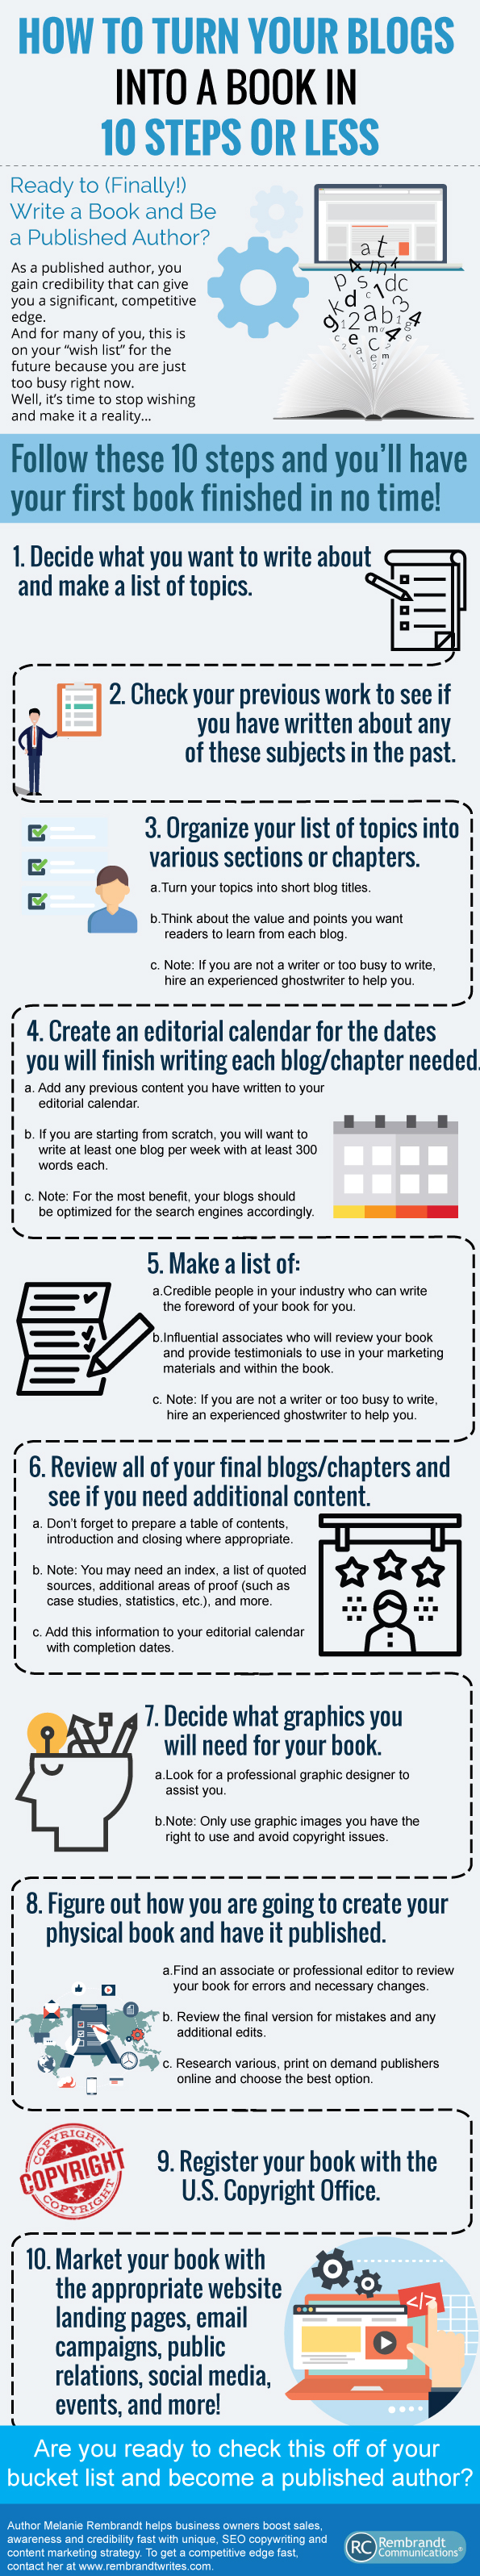 How to Turn Blogs Into Books by Melanie Rembrandt